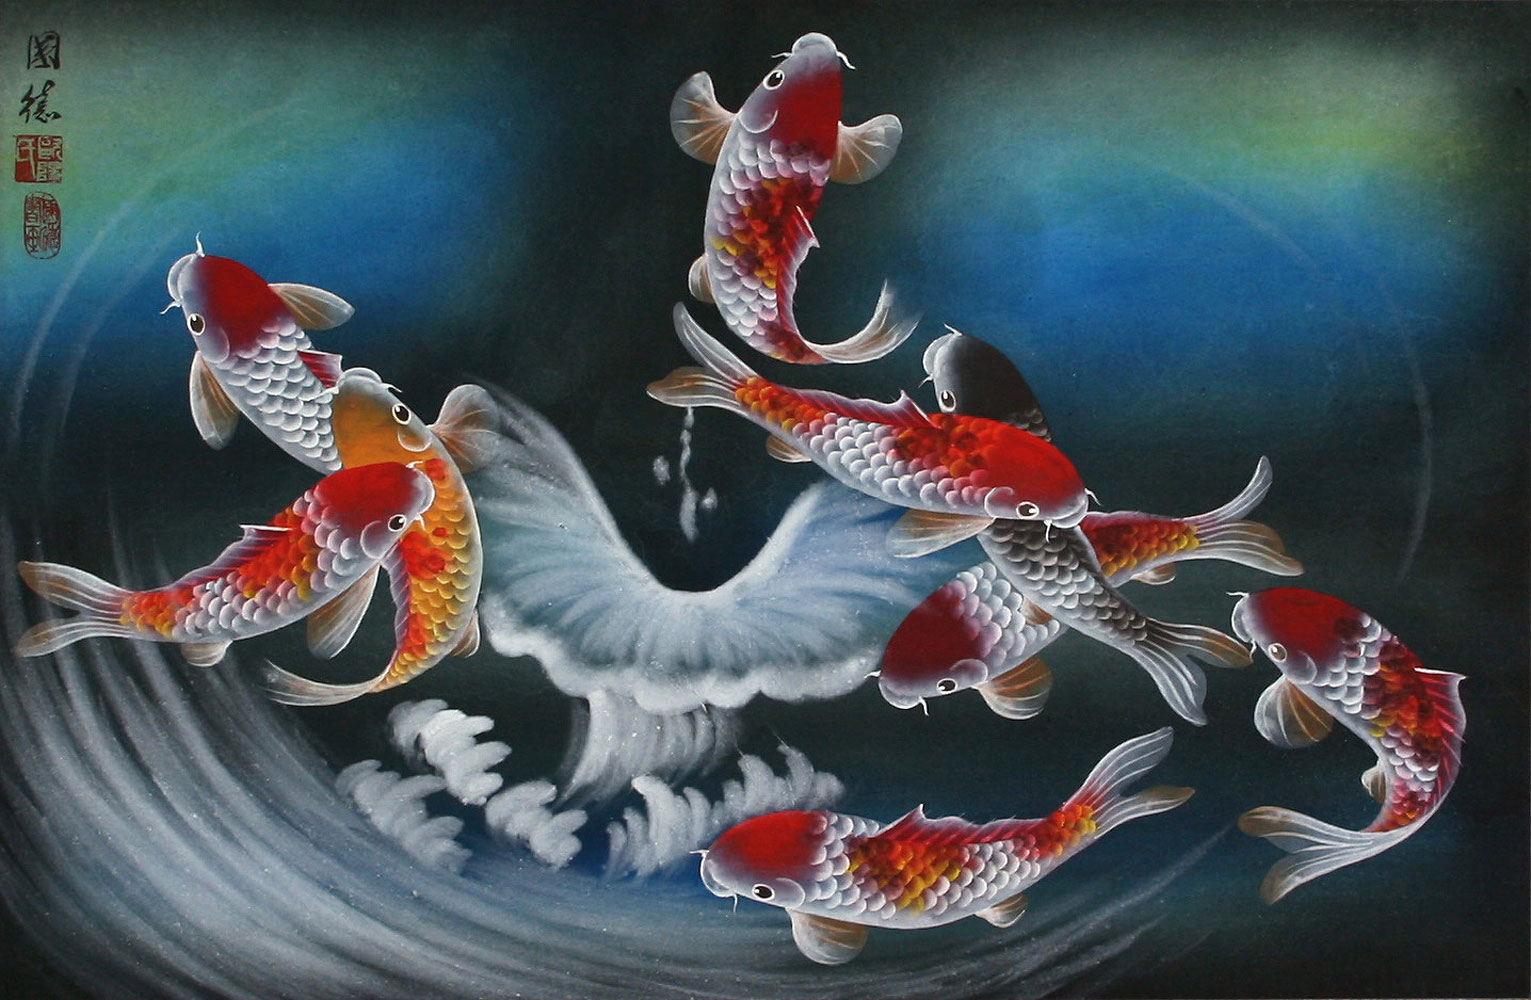 Nine koi fish blue dreams painting asian koi fish paintings wall scrolls chinese art for Chinese coy fish